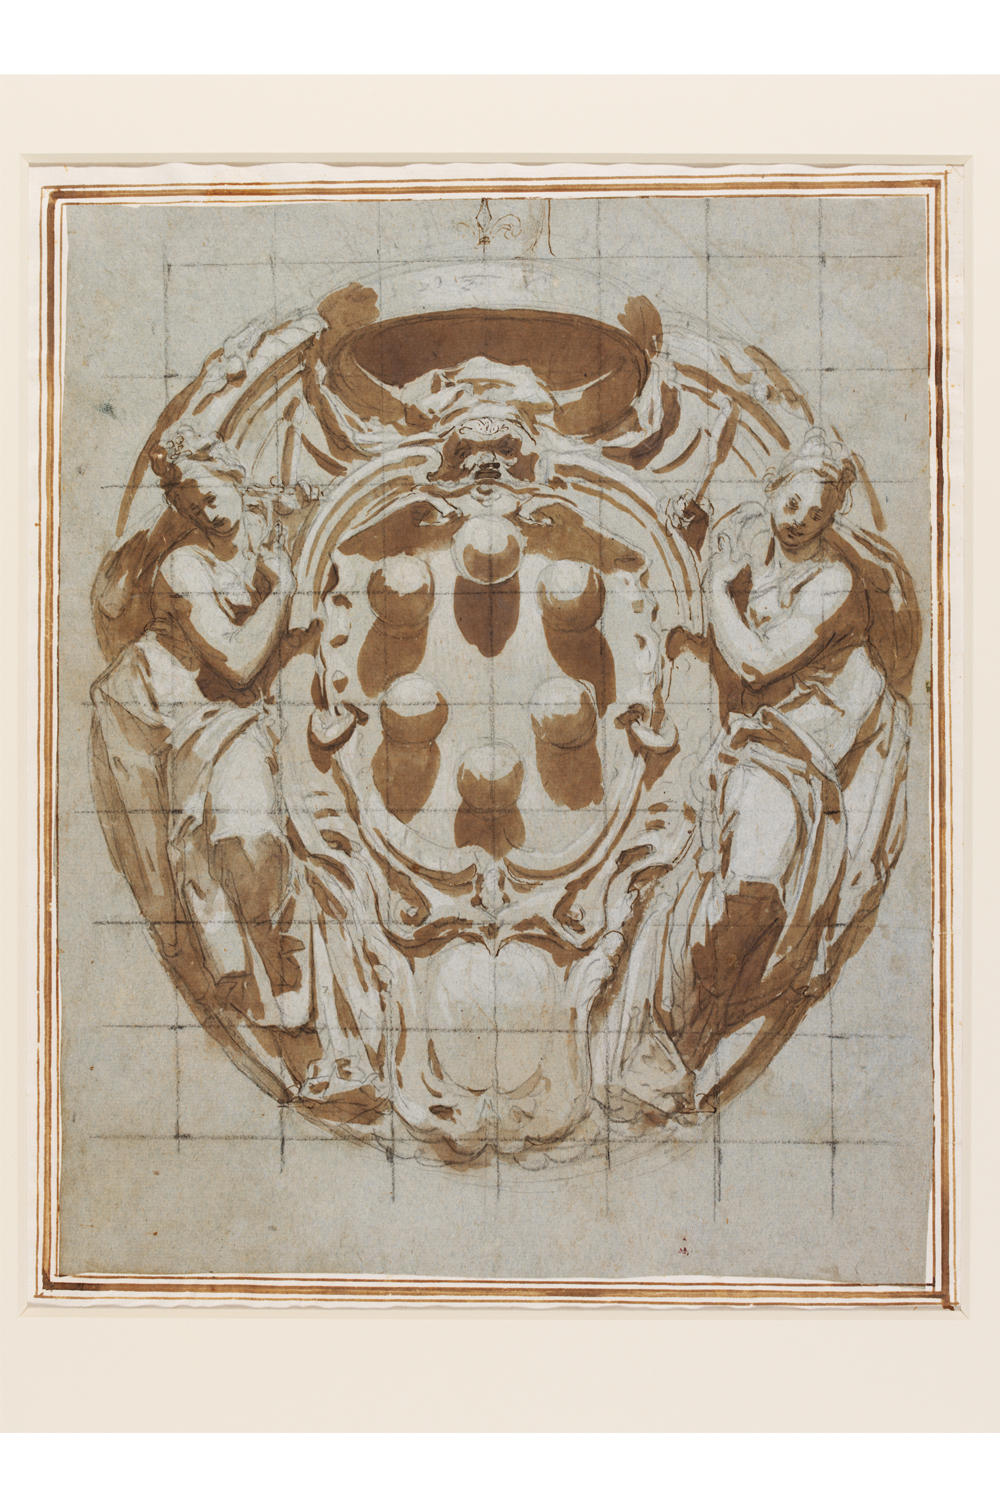 Design for a cartouche by Il Poccetti, 1607-12